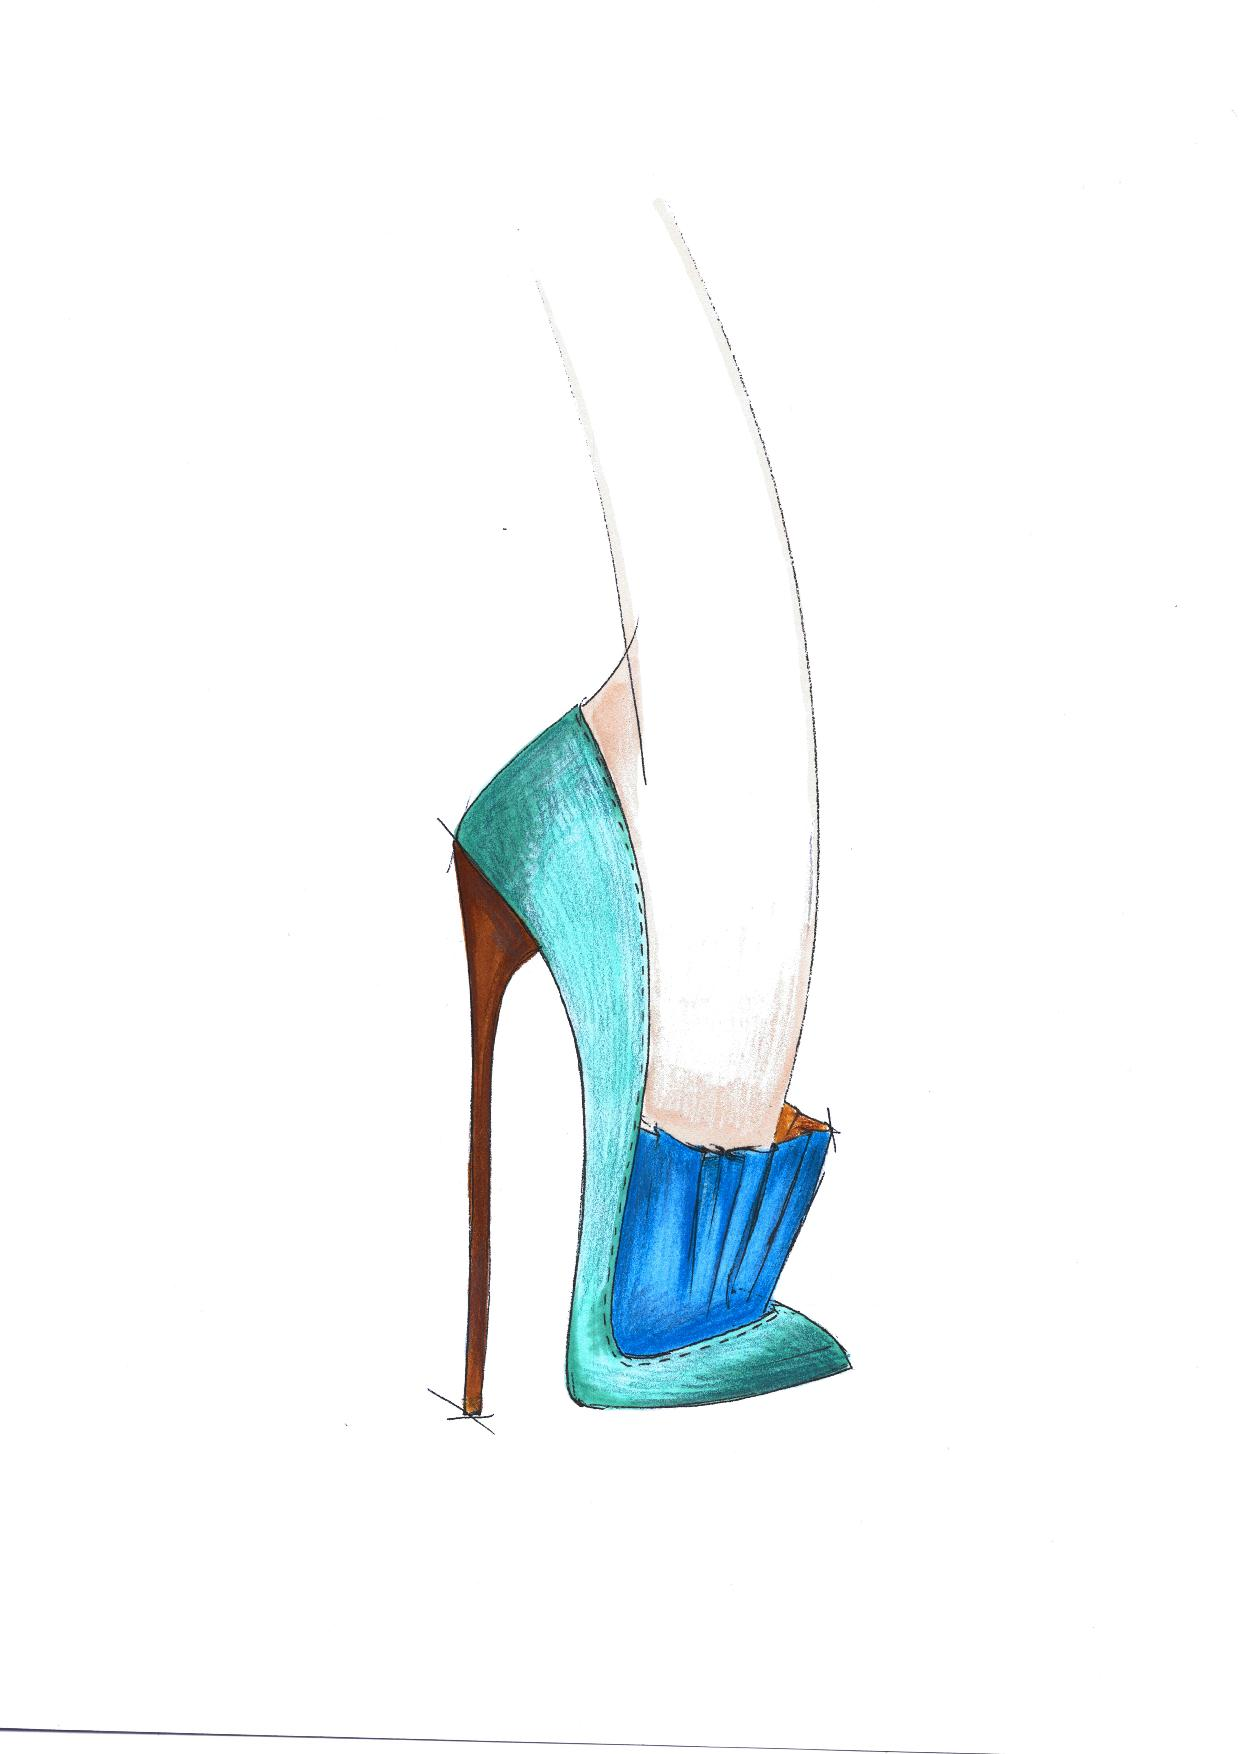 Malone Souliers Adam Lippes collaboration